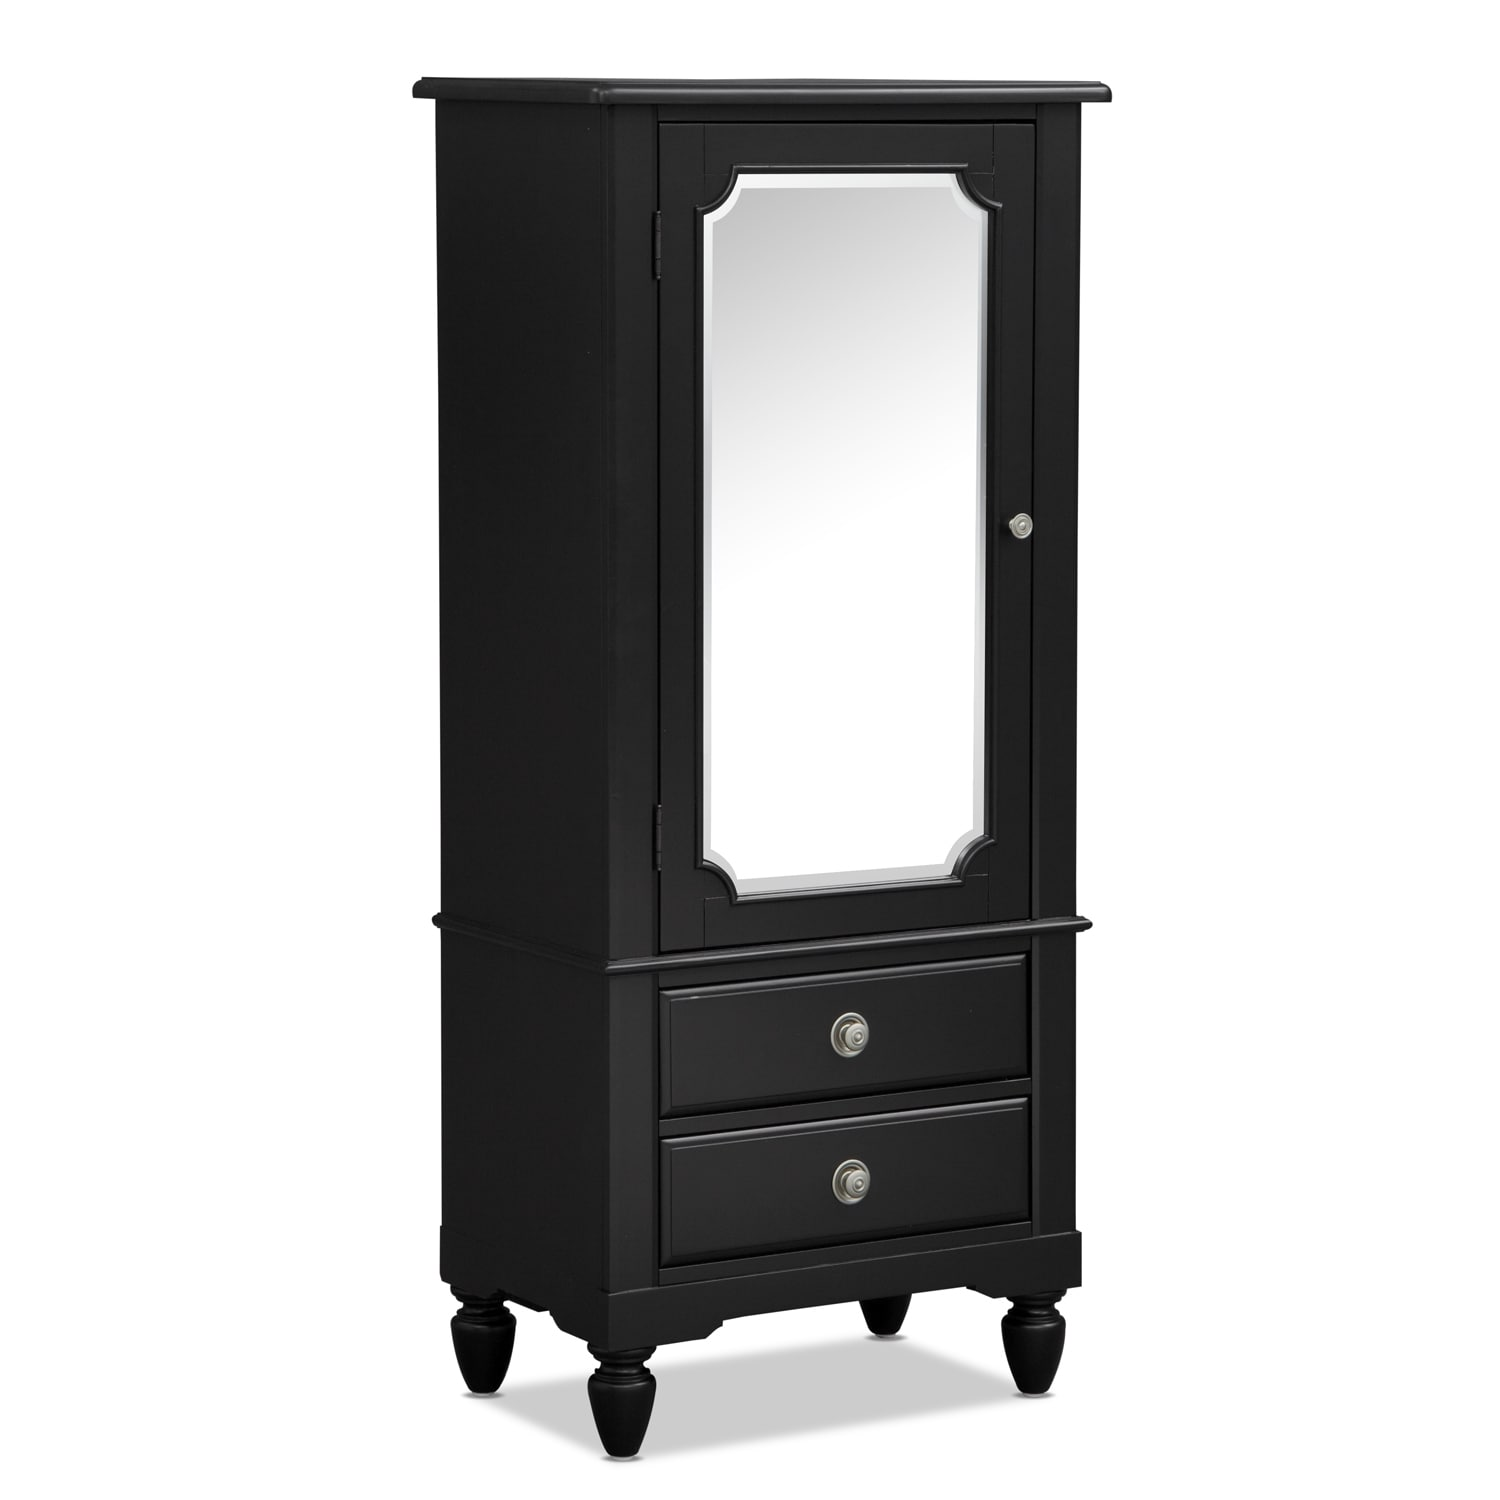 Kids Furniture - Seaside Black Lingerie Chest